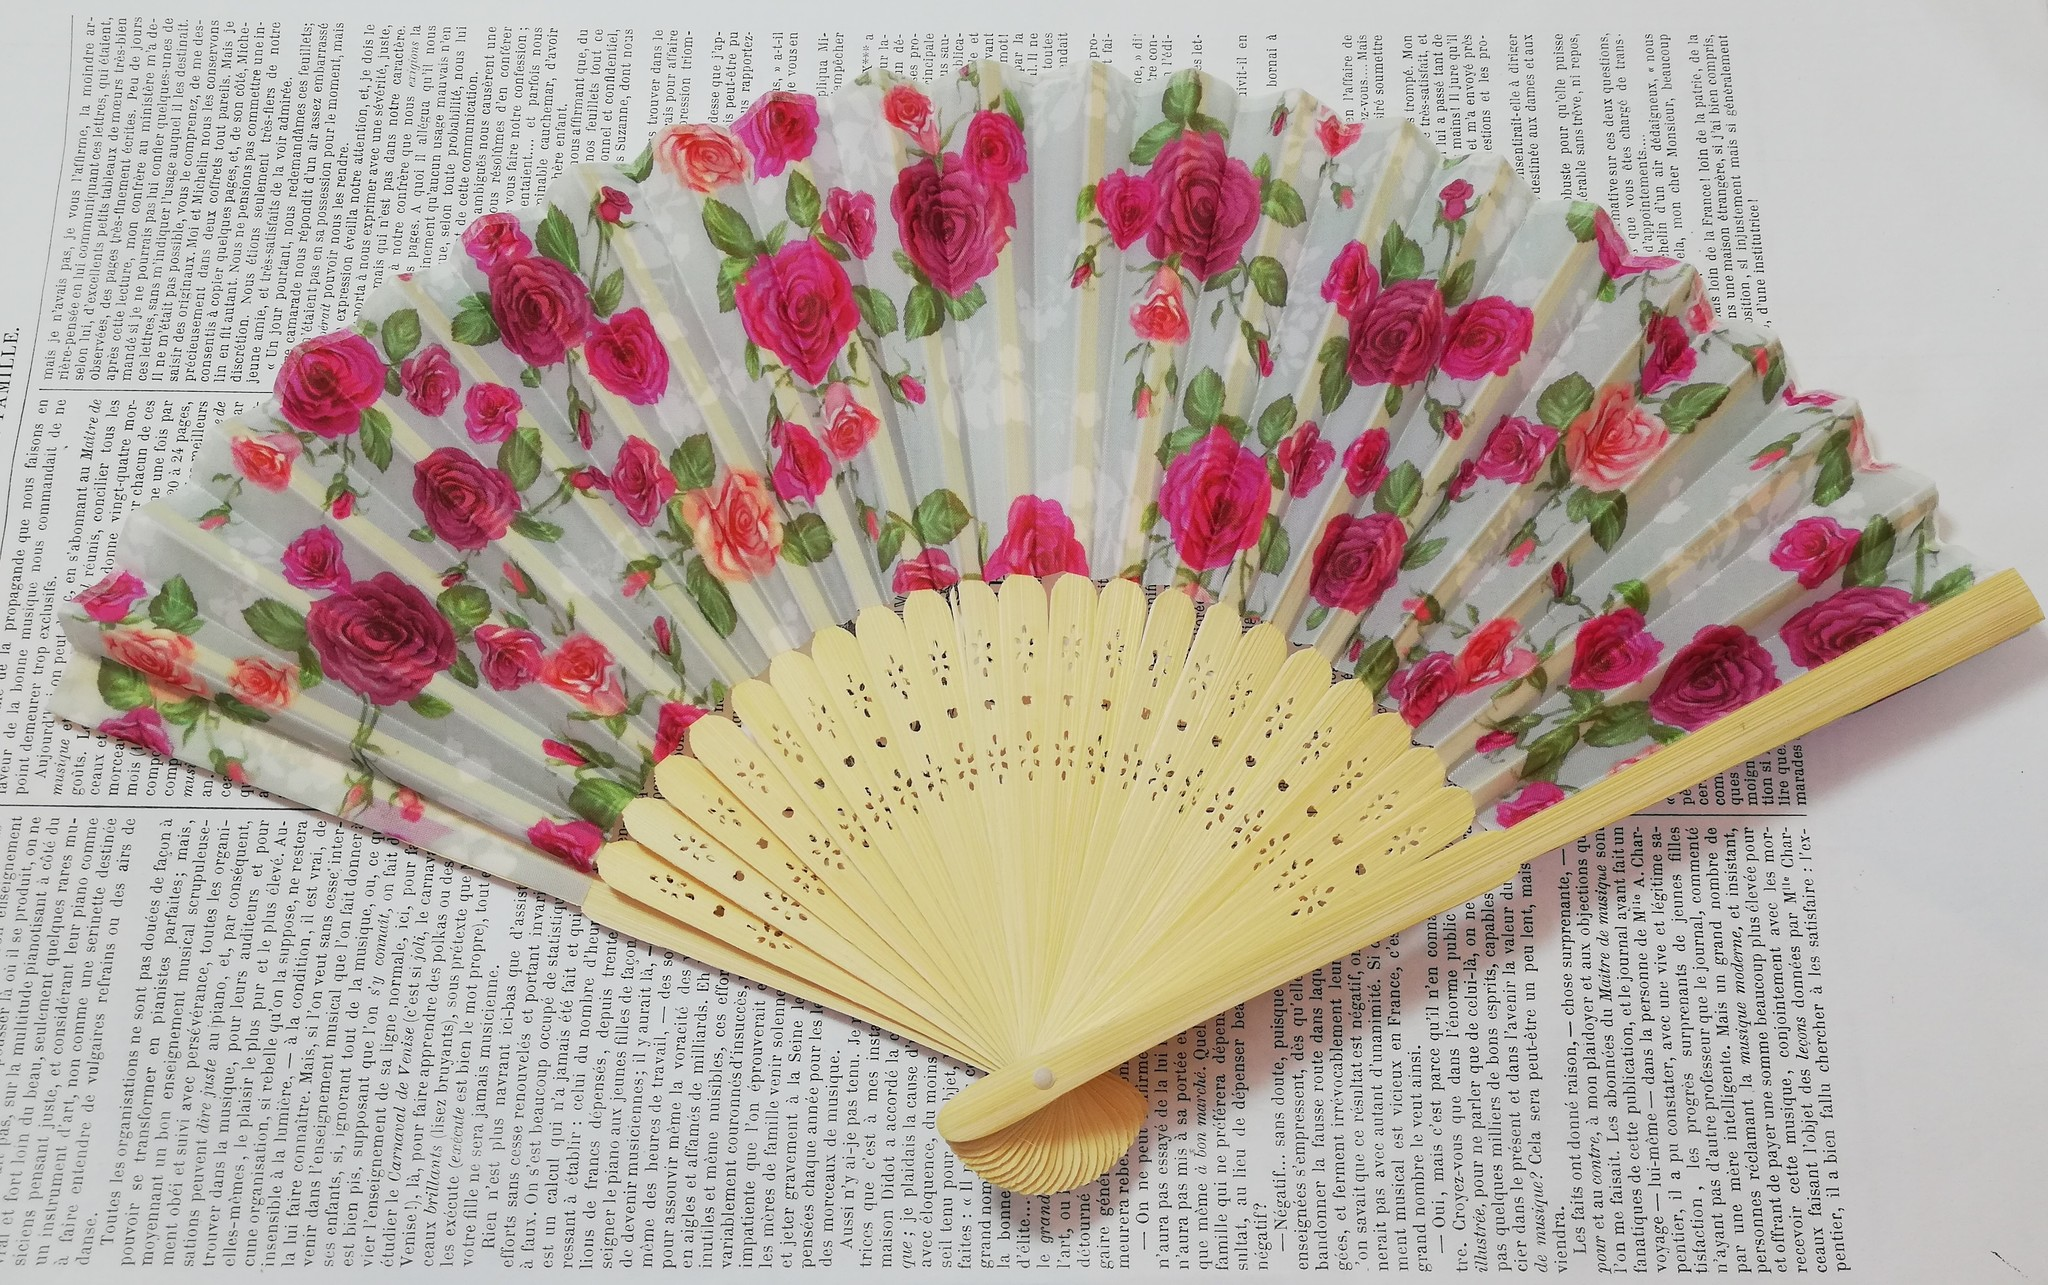 Fan with rose fabric diff. colors